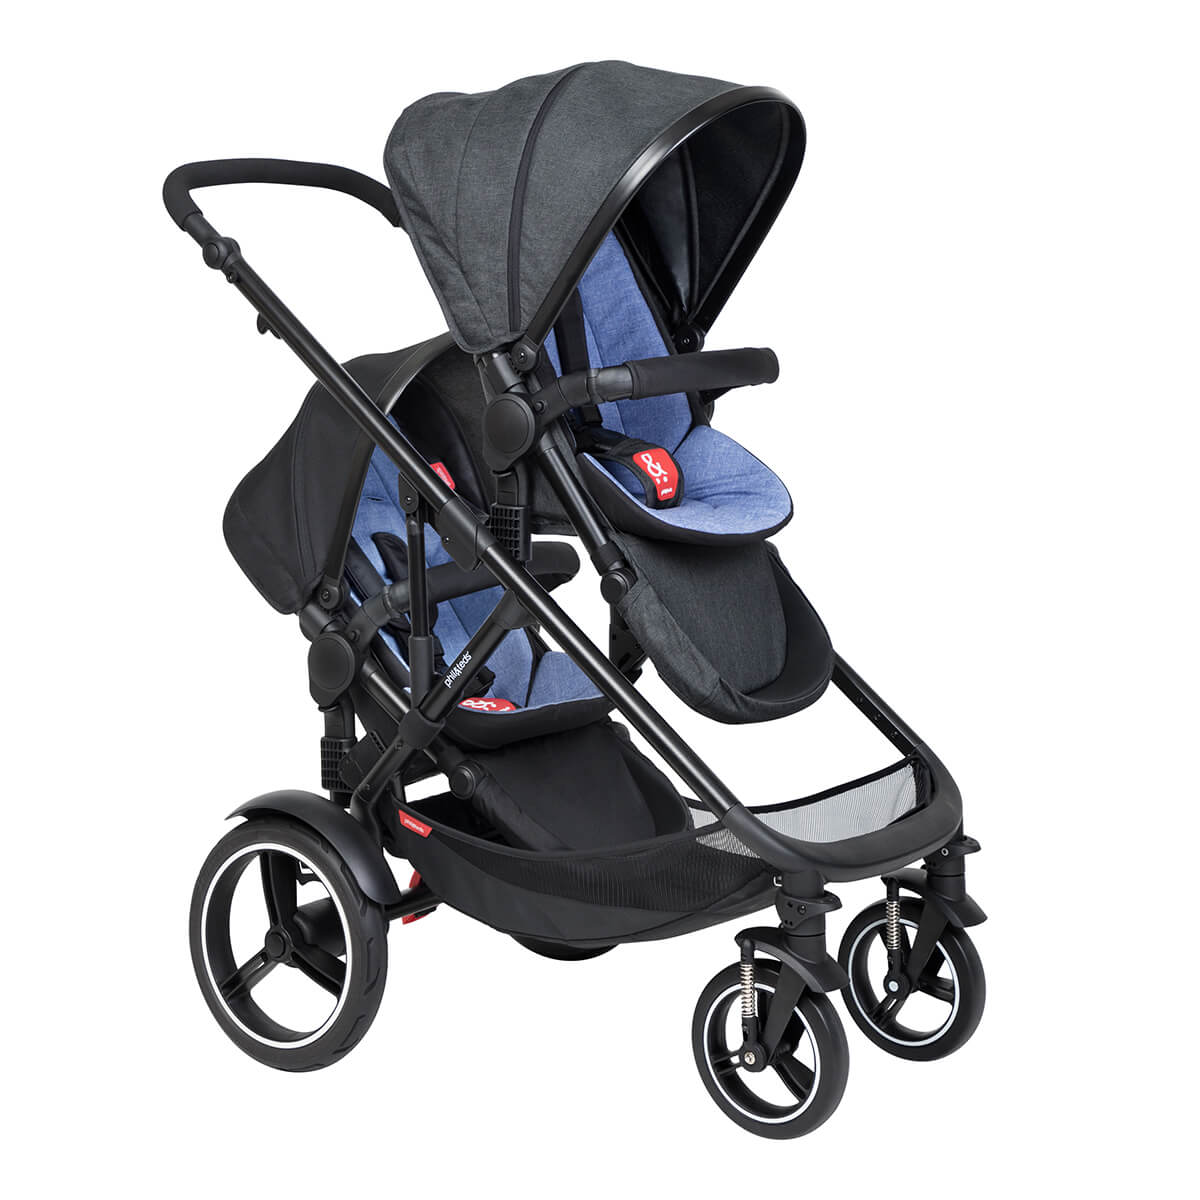 https://cdn.accentuate.io/4343378575394/19437753860274/philteds-voyager-inline-buggy-with-double-kit-in-rear-in-sky-blue-colour-v1626482952563.jpg?1200x1200